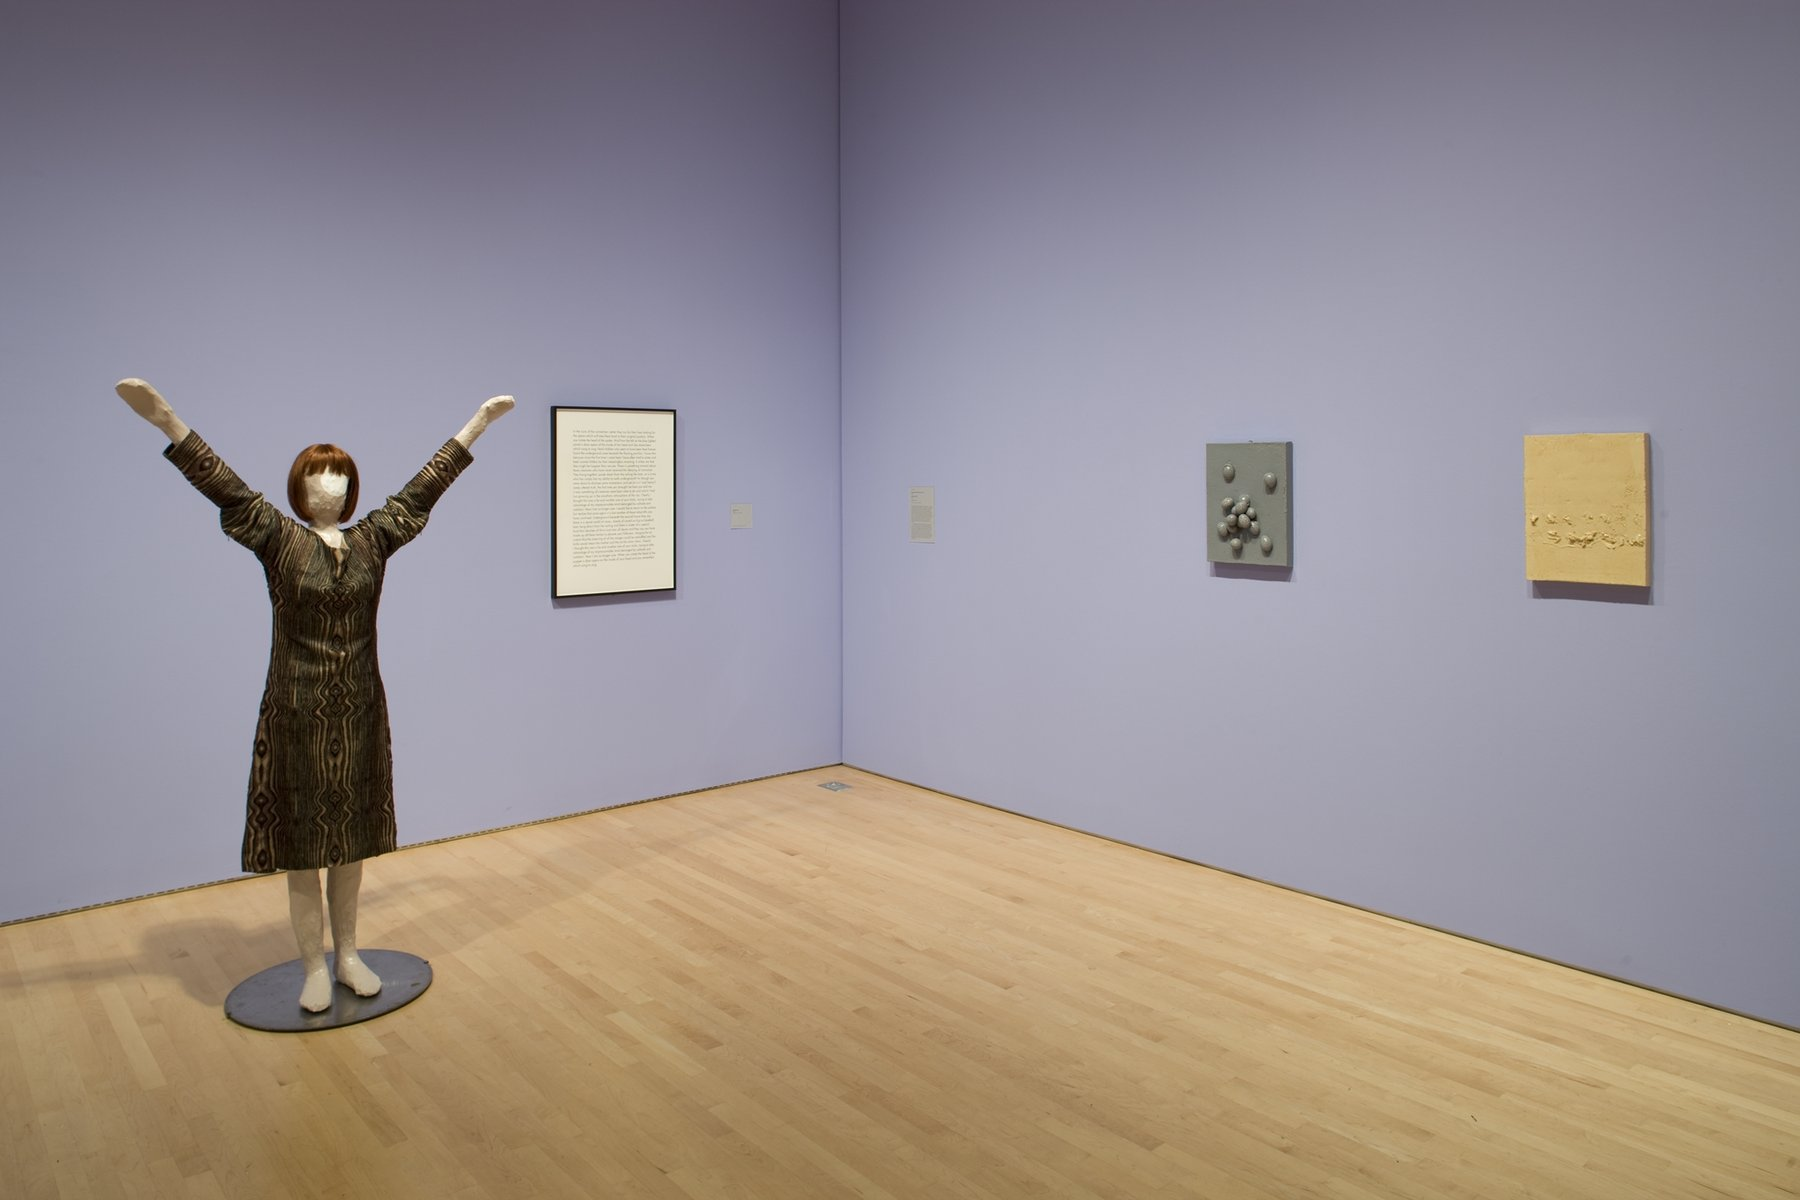 A sculpture of a woman with her hands raised in the air next to a framed block of text and two wall-hanging sculptures